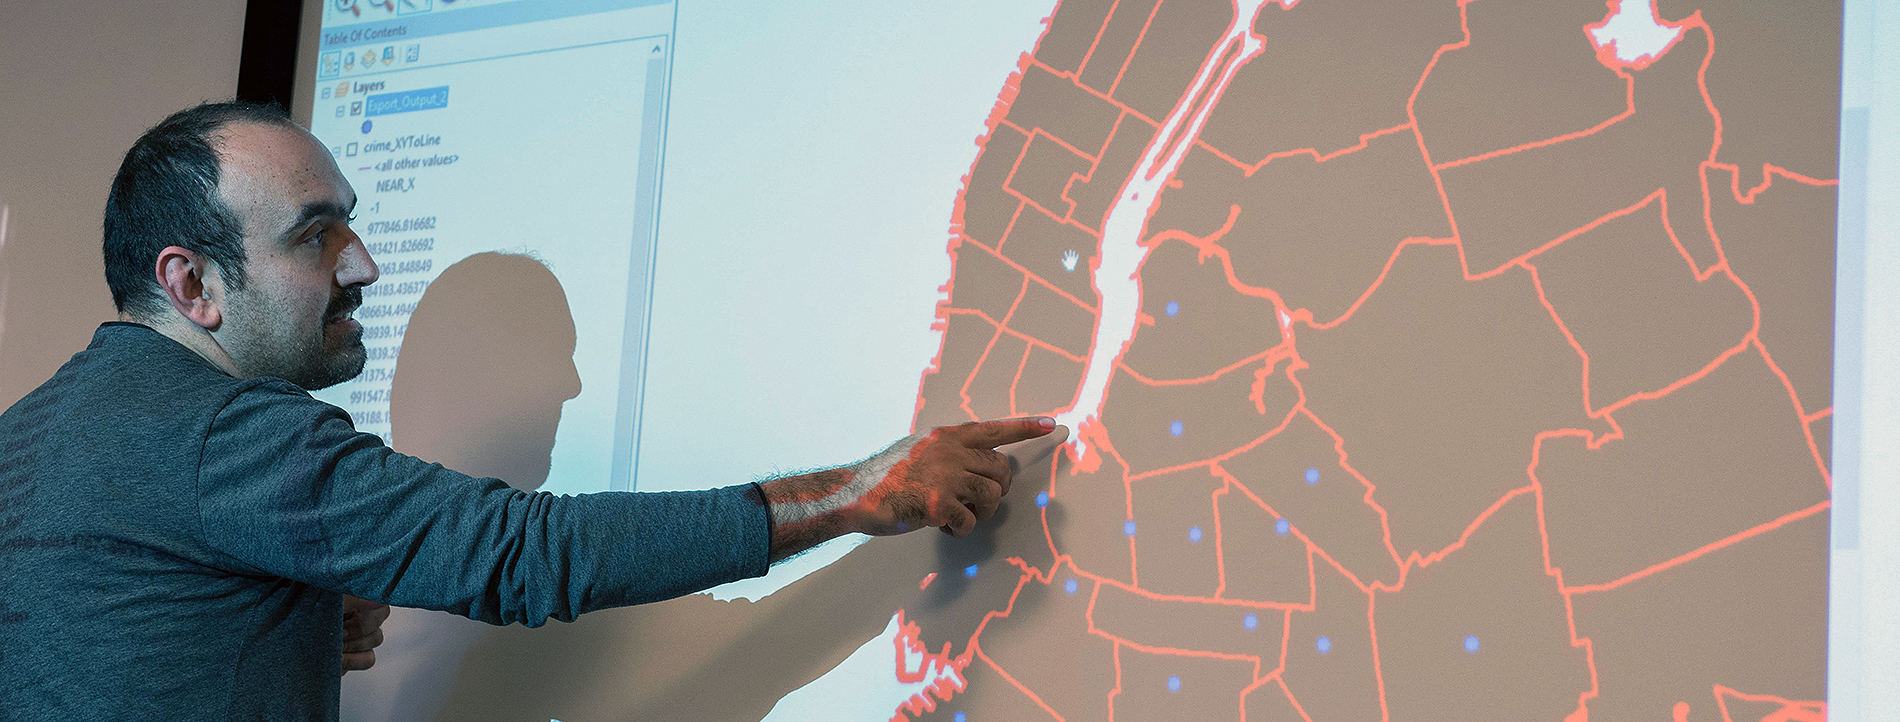 Member of Pratt faculty indicating a place on a map, on a presentation